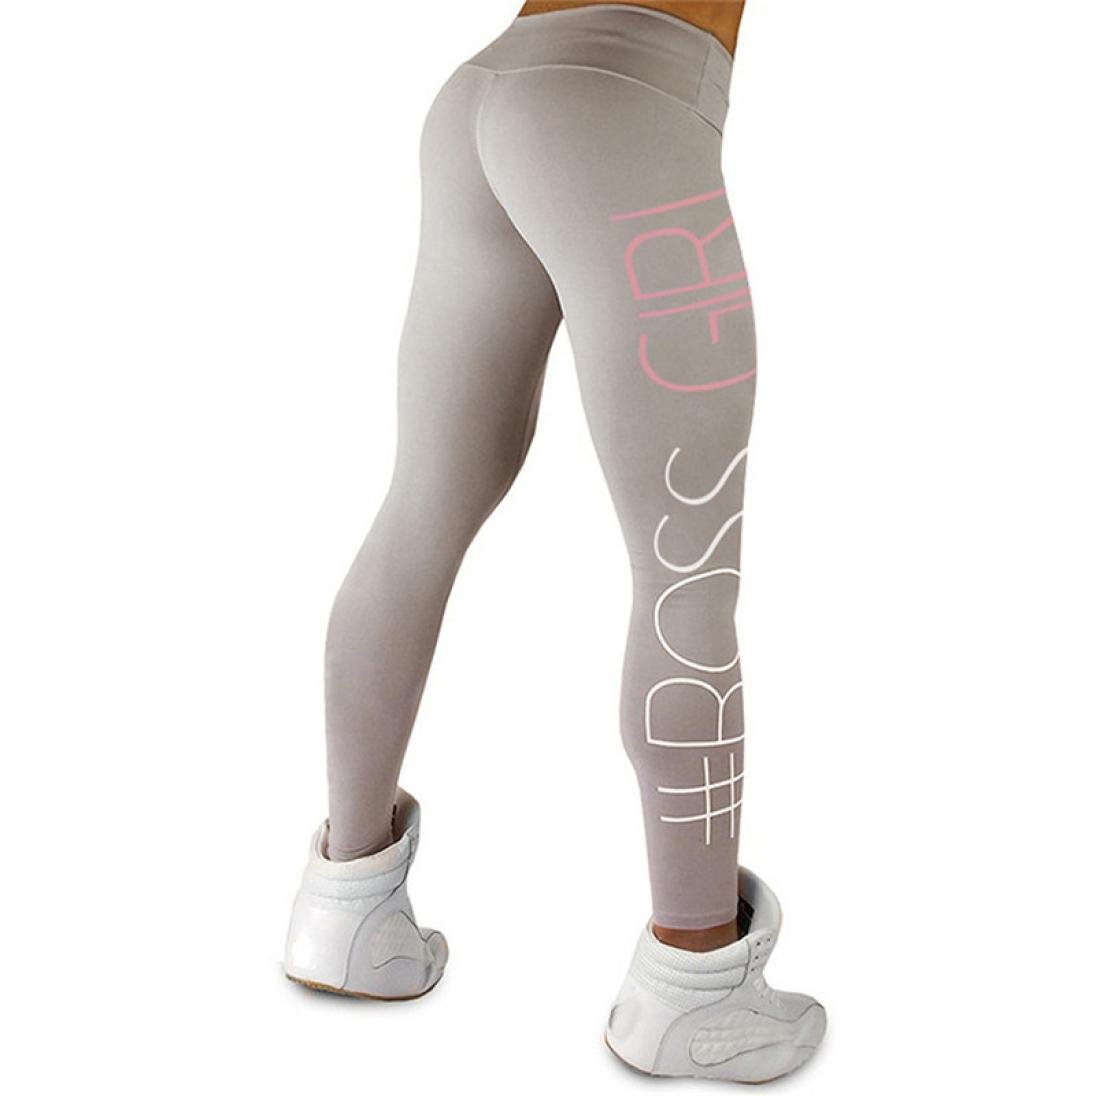 Homebaby Leggings Donna Push Up - Leggings Sport Opaco Yoga Fitness Spandex Palestra Pantaloni Leggins Eleganti Leggings Sportivi - Pantaloni Tuta Donna